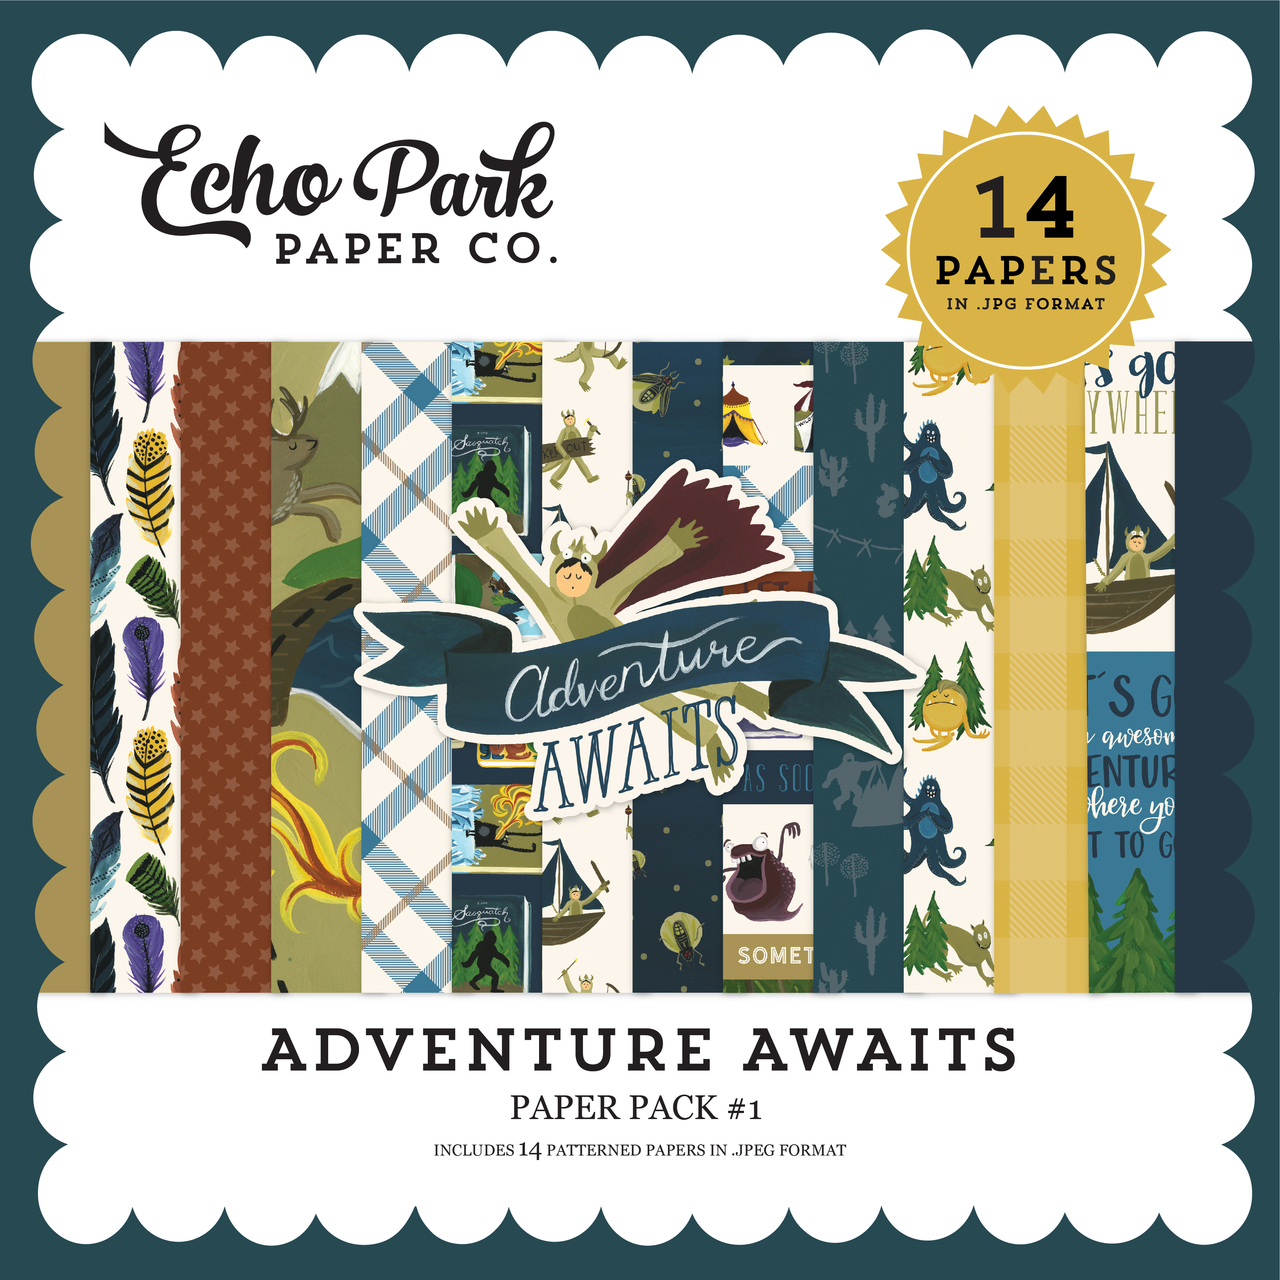 Adventure Awaits Paper Pack #1